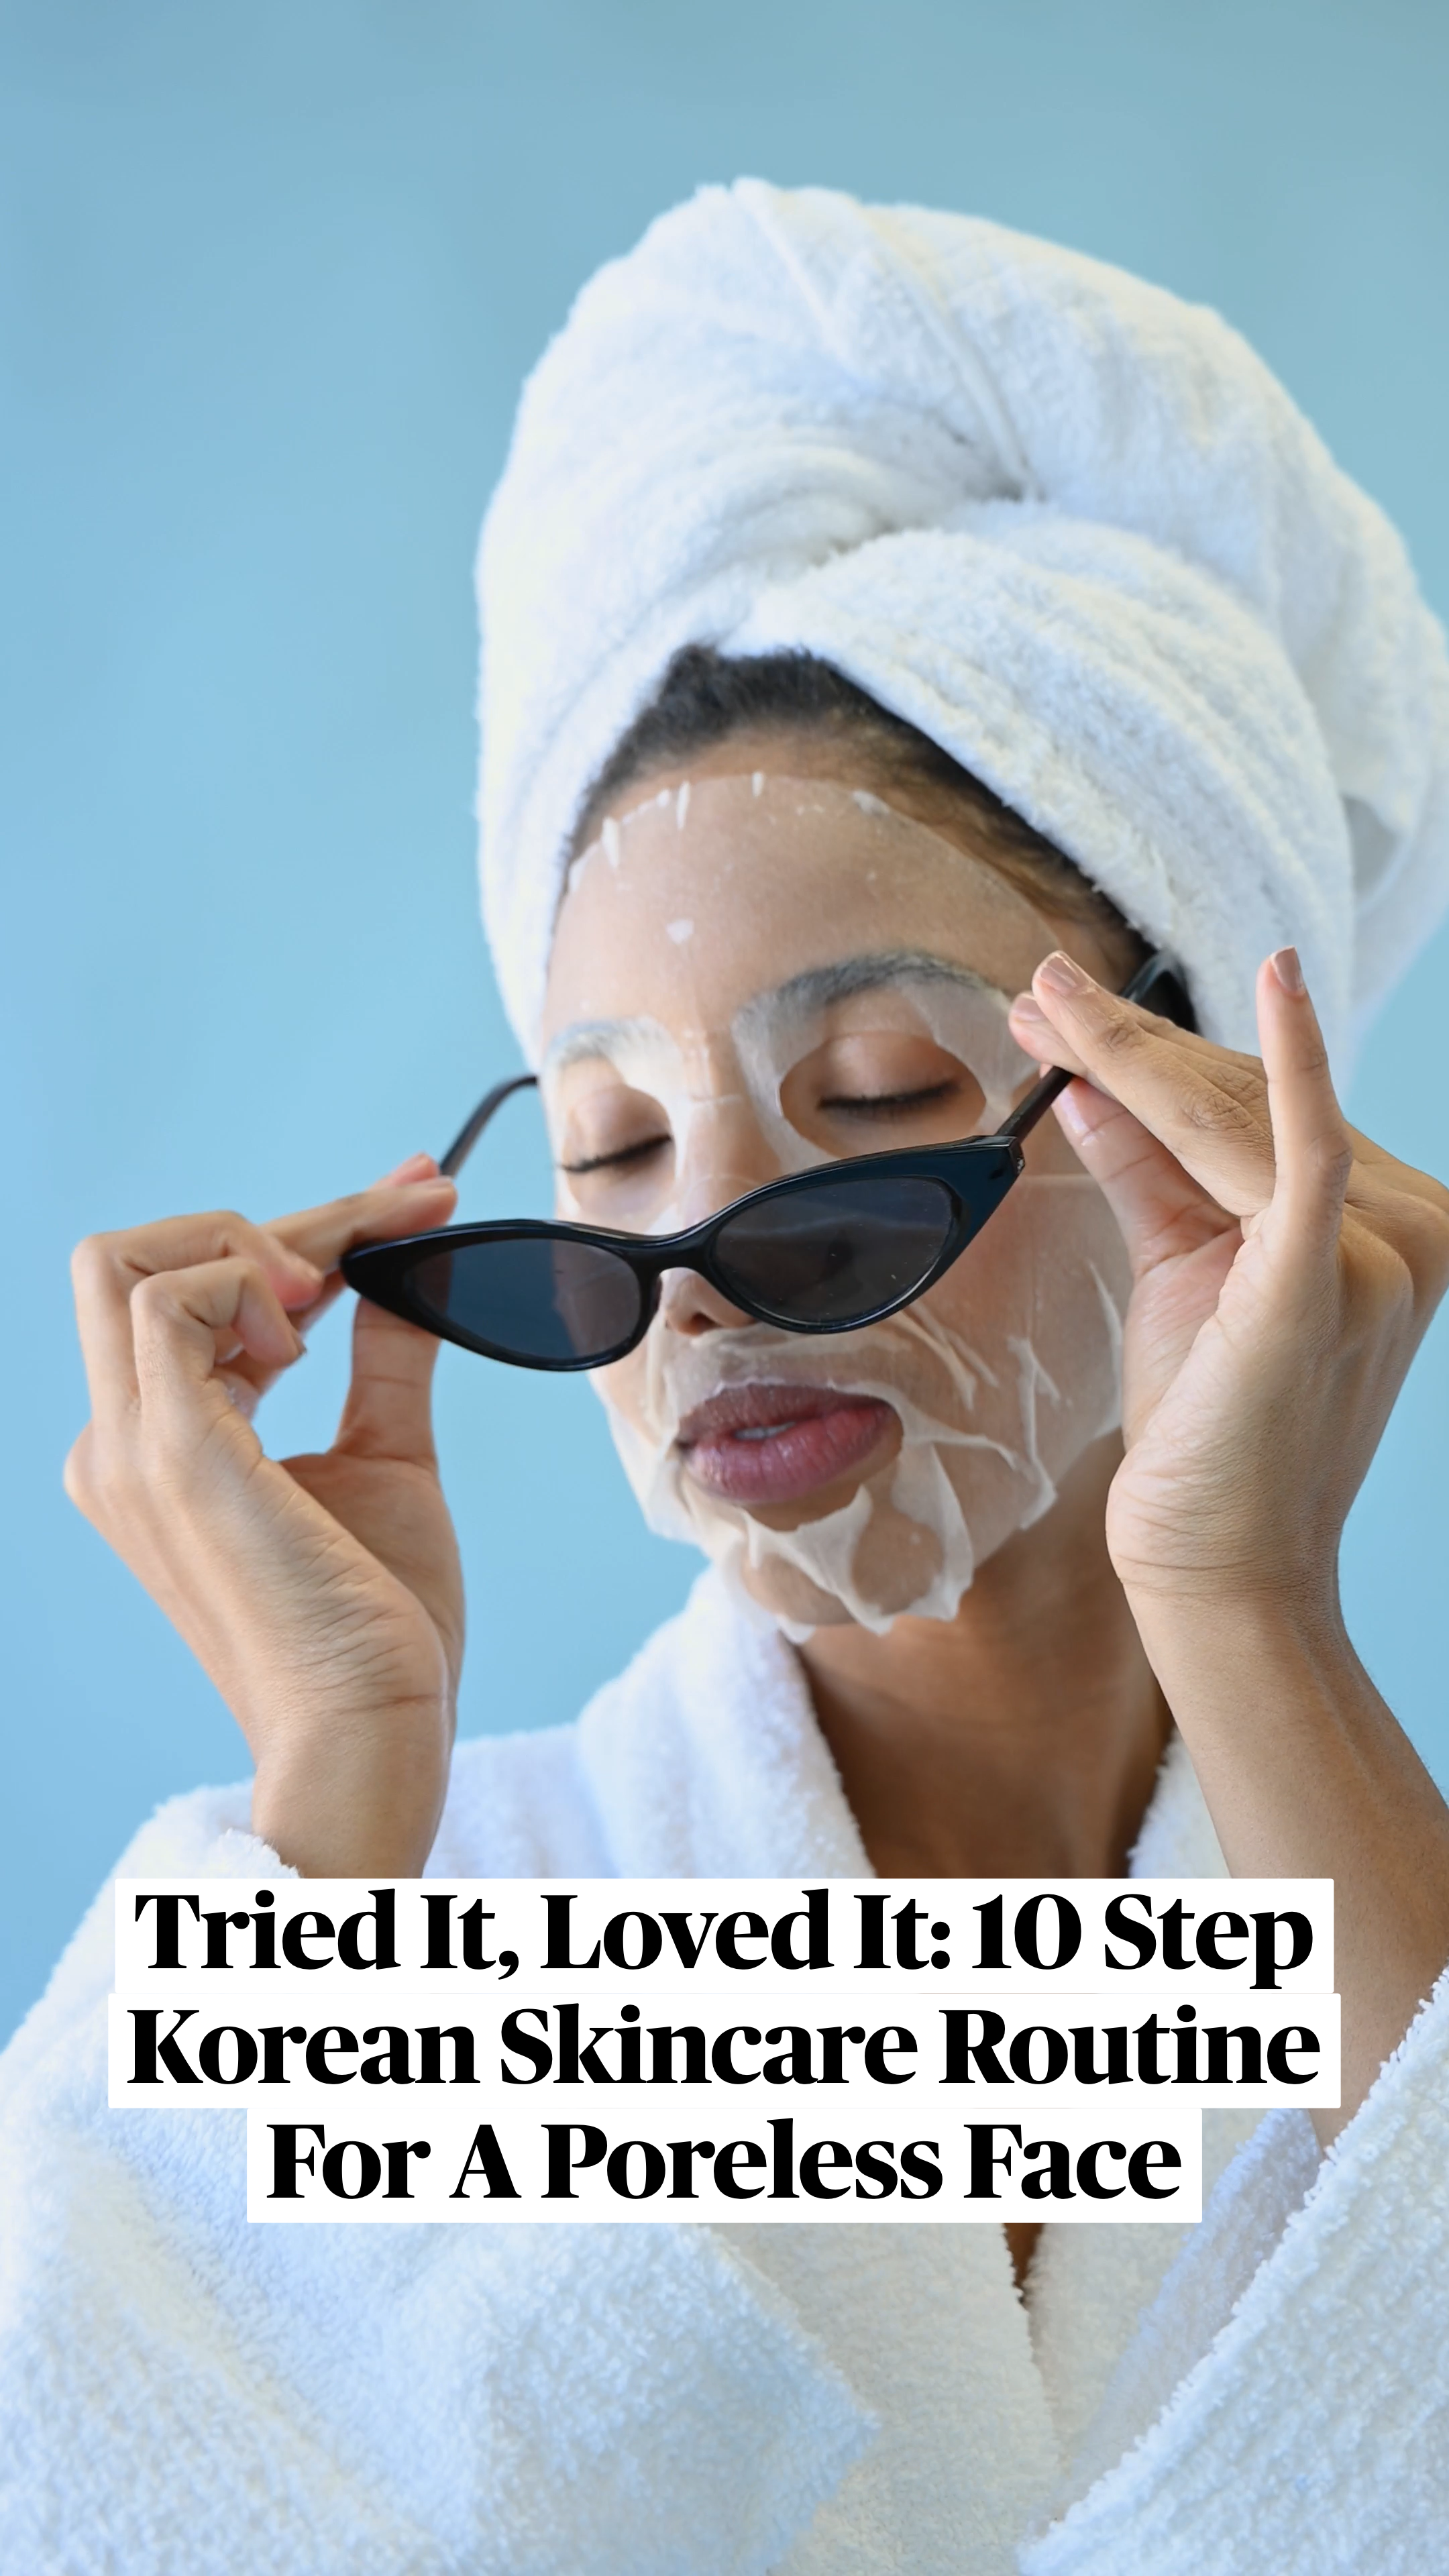 Tried It, Loved It: 10 Step Korean Skincare Routine For A Poreless Face